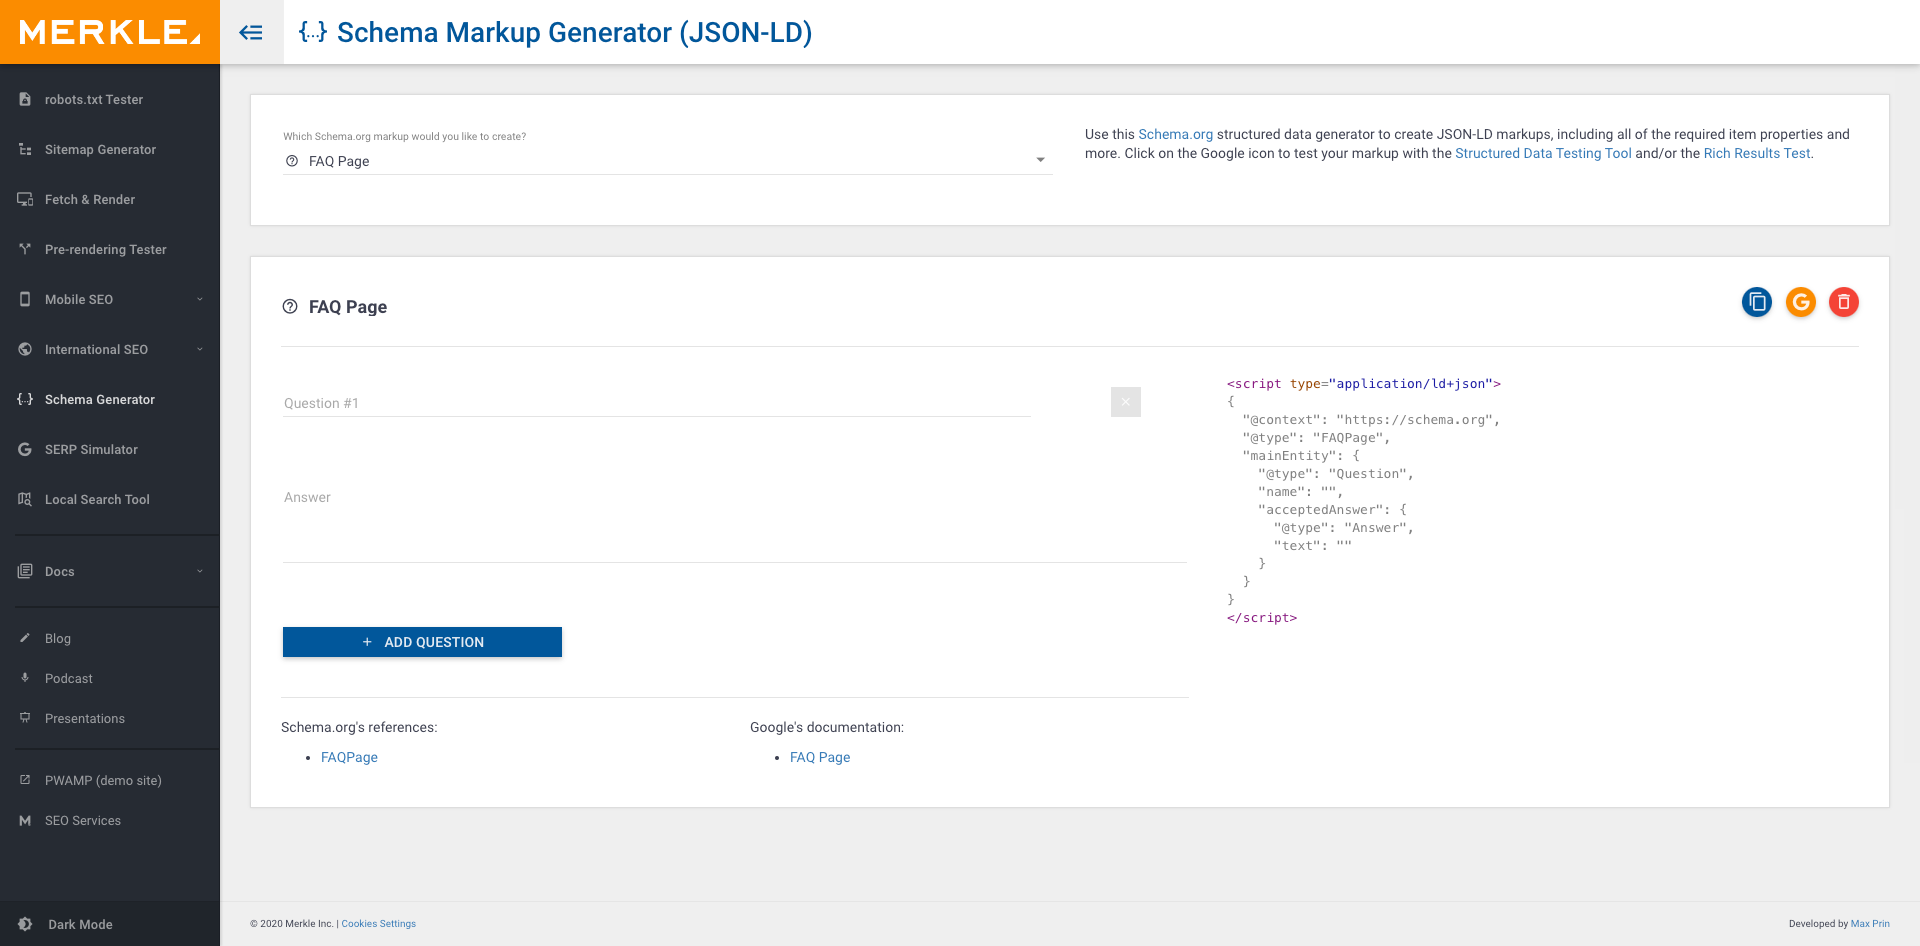 Use this Schema.org structured data generator to create JSON-LD markups